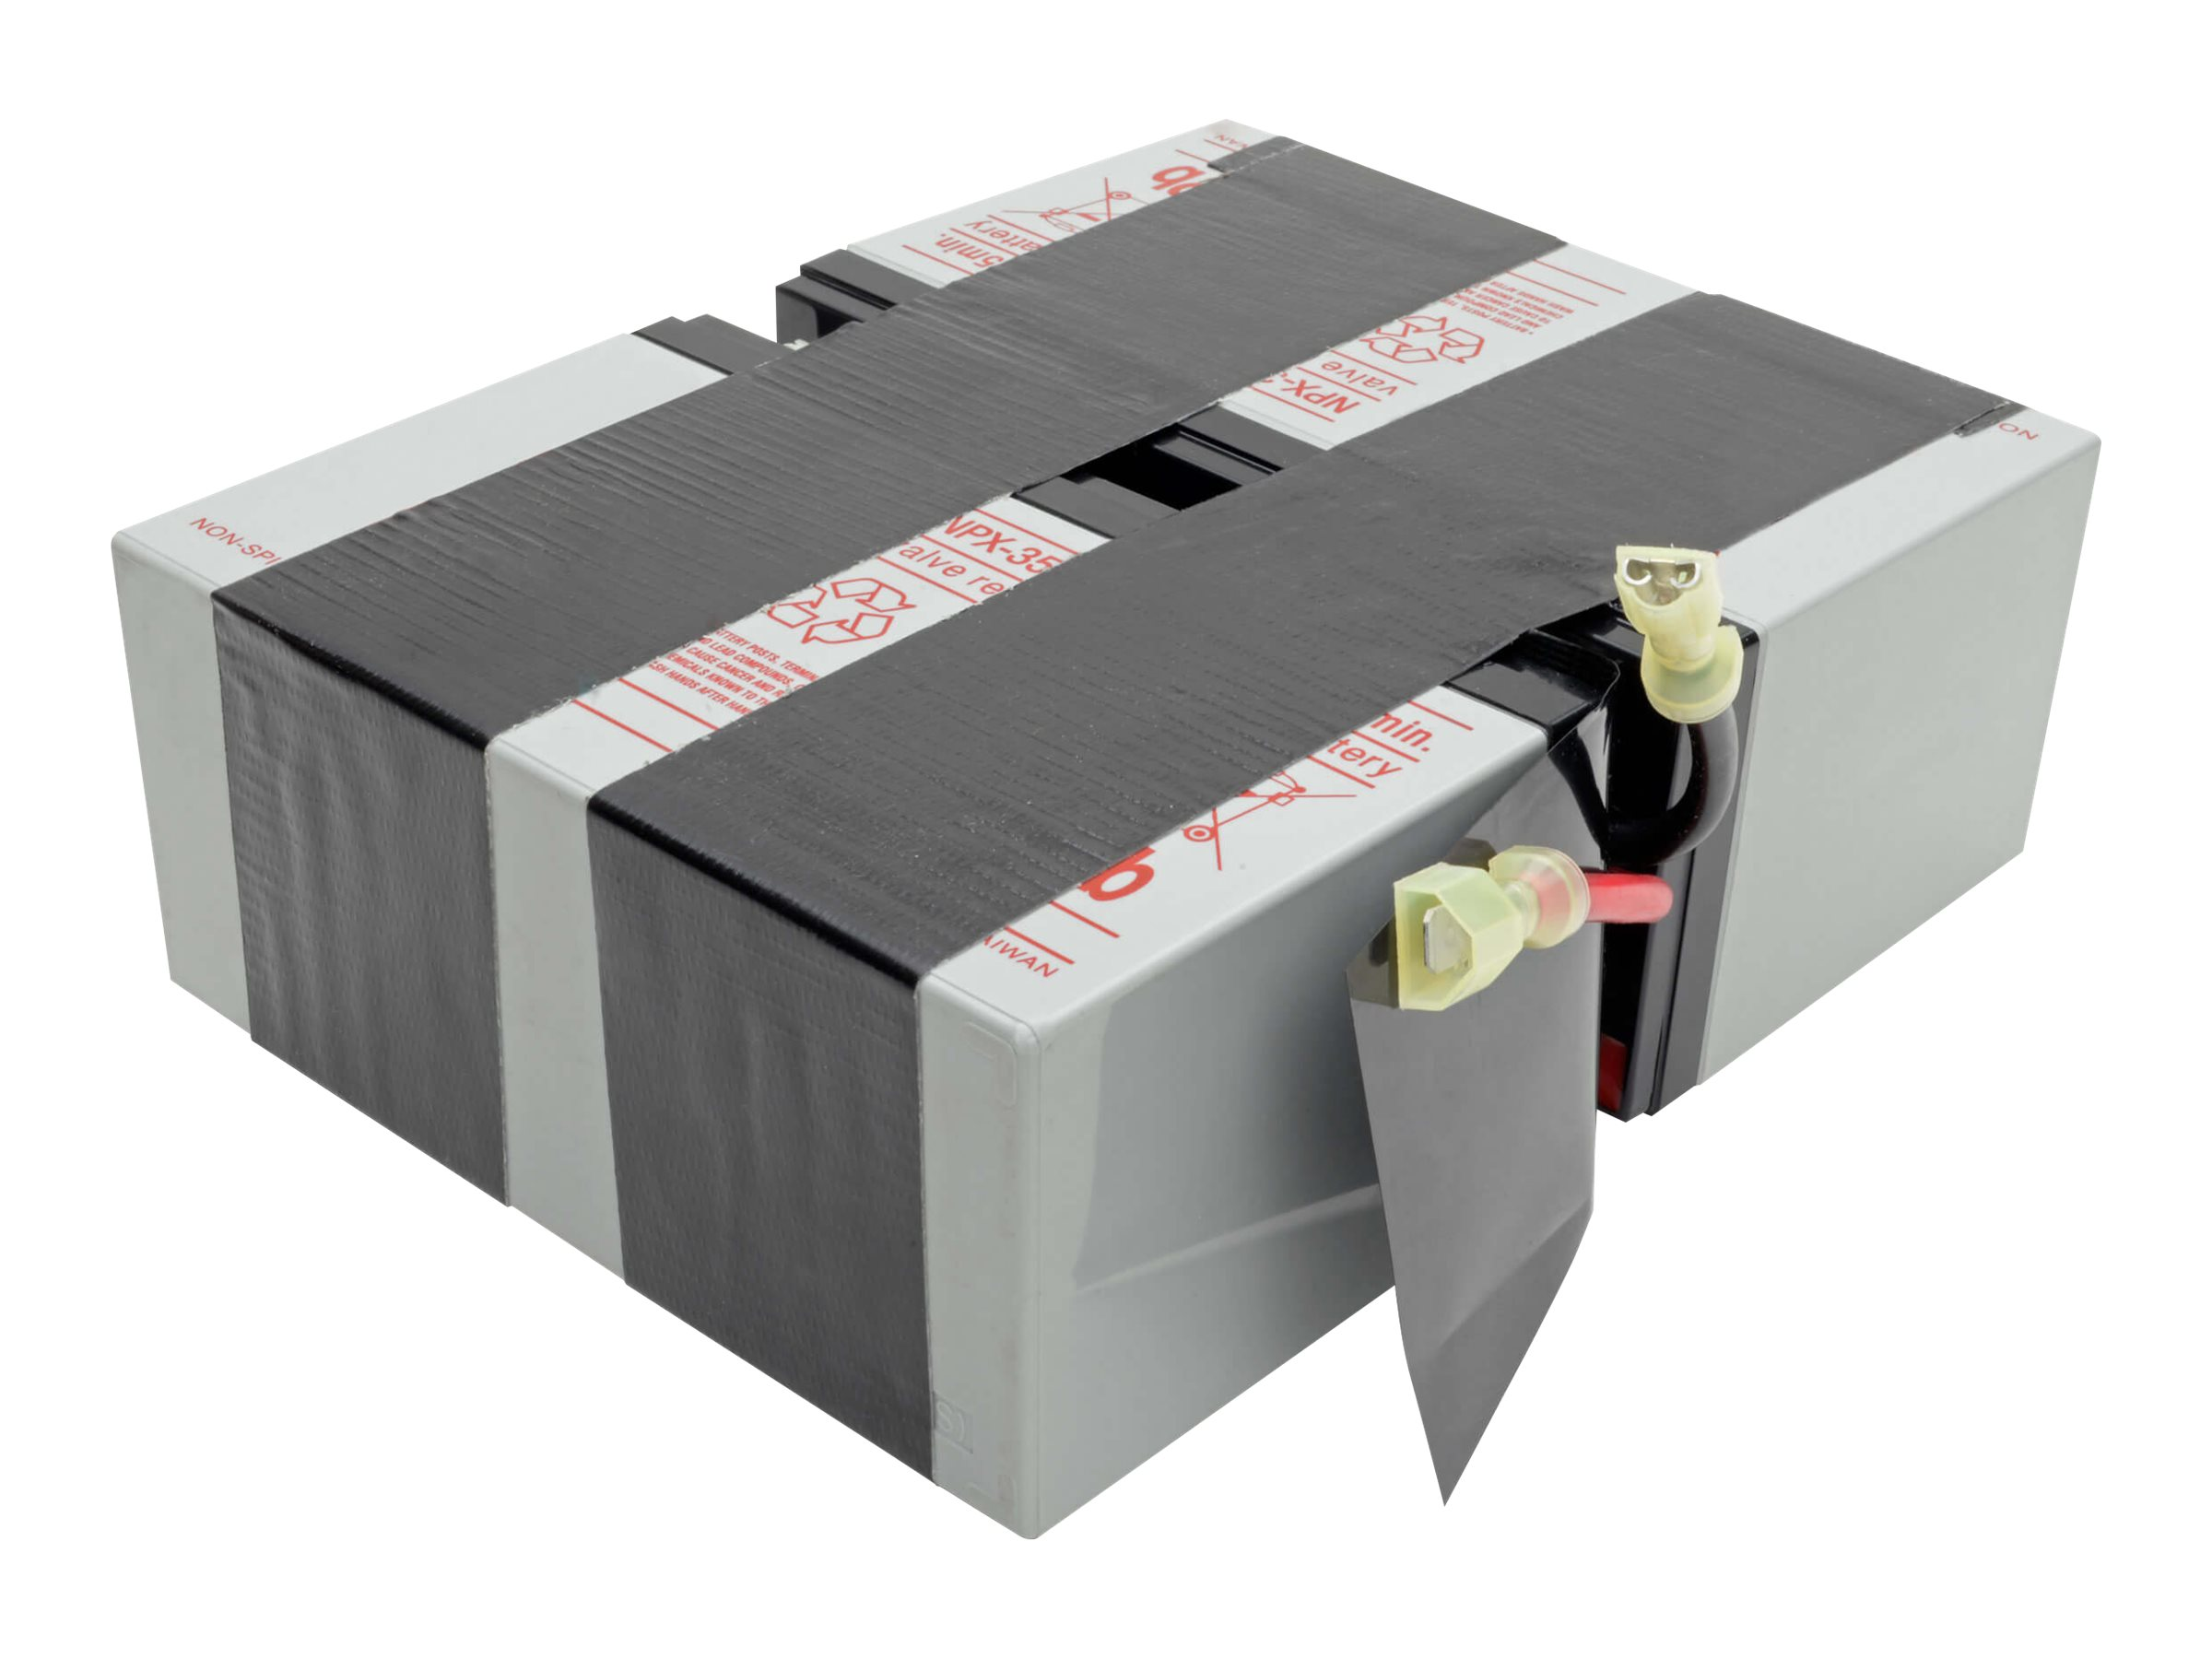 Tripp Lite UPS Battery Replacement for Select SMART1200LCD, SMART1500LCD, SMART1500LCDXL, SMX1500LCD UPS Systems - UPS …